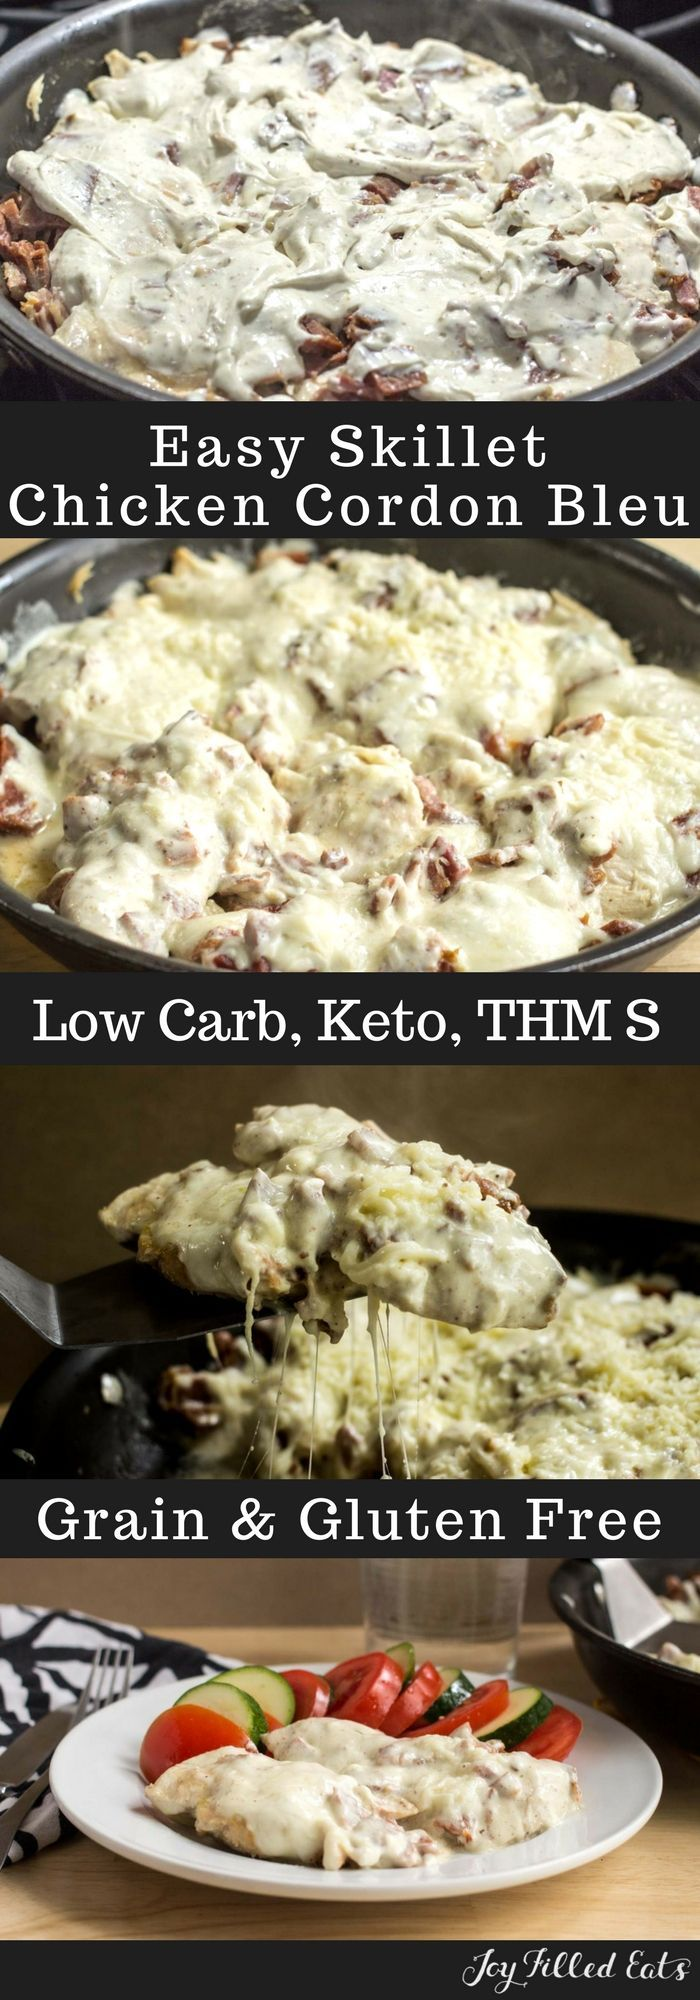 Easy Skillet Chicken Cordon Bleu Low Carb Keto Grain Gluten Free